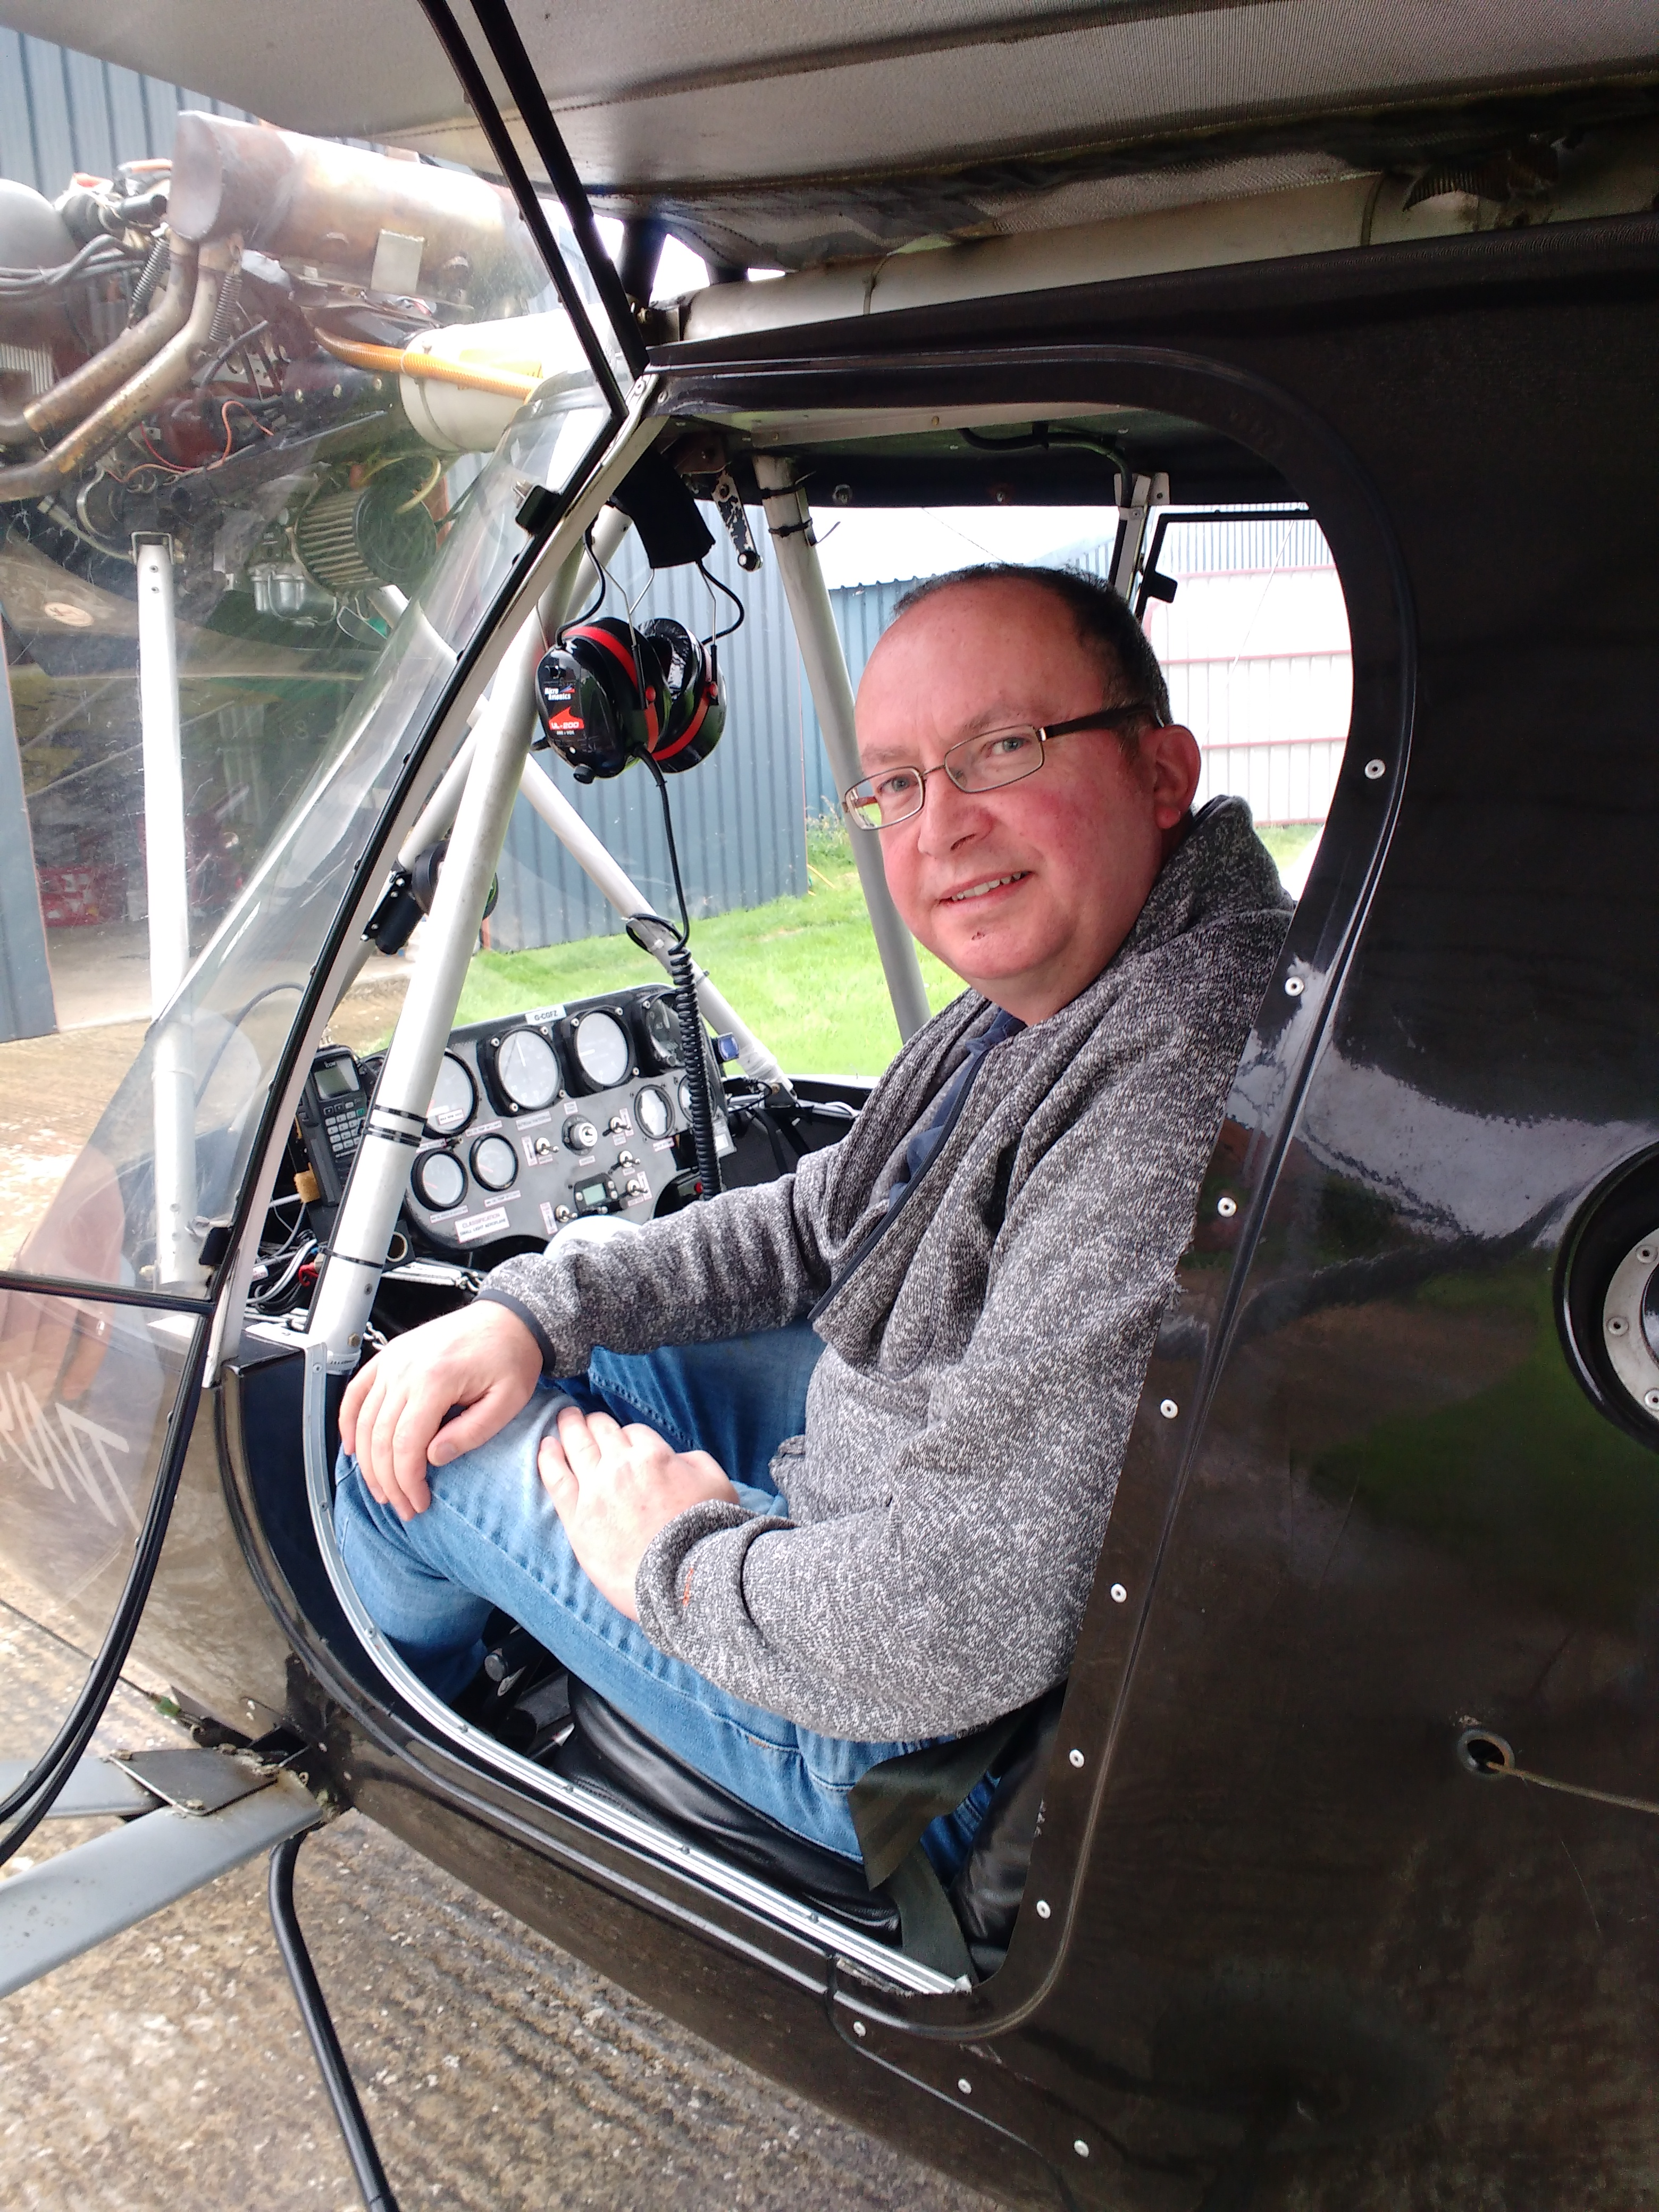 Gary Crosbie completes his first solo flight.